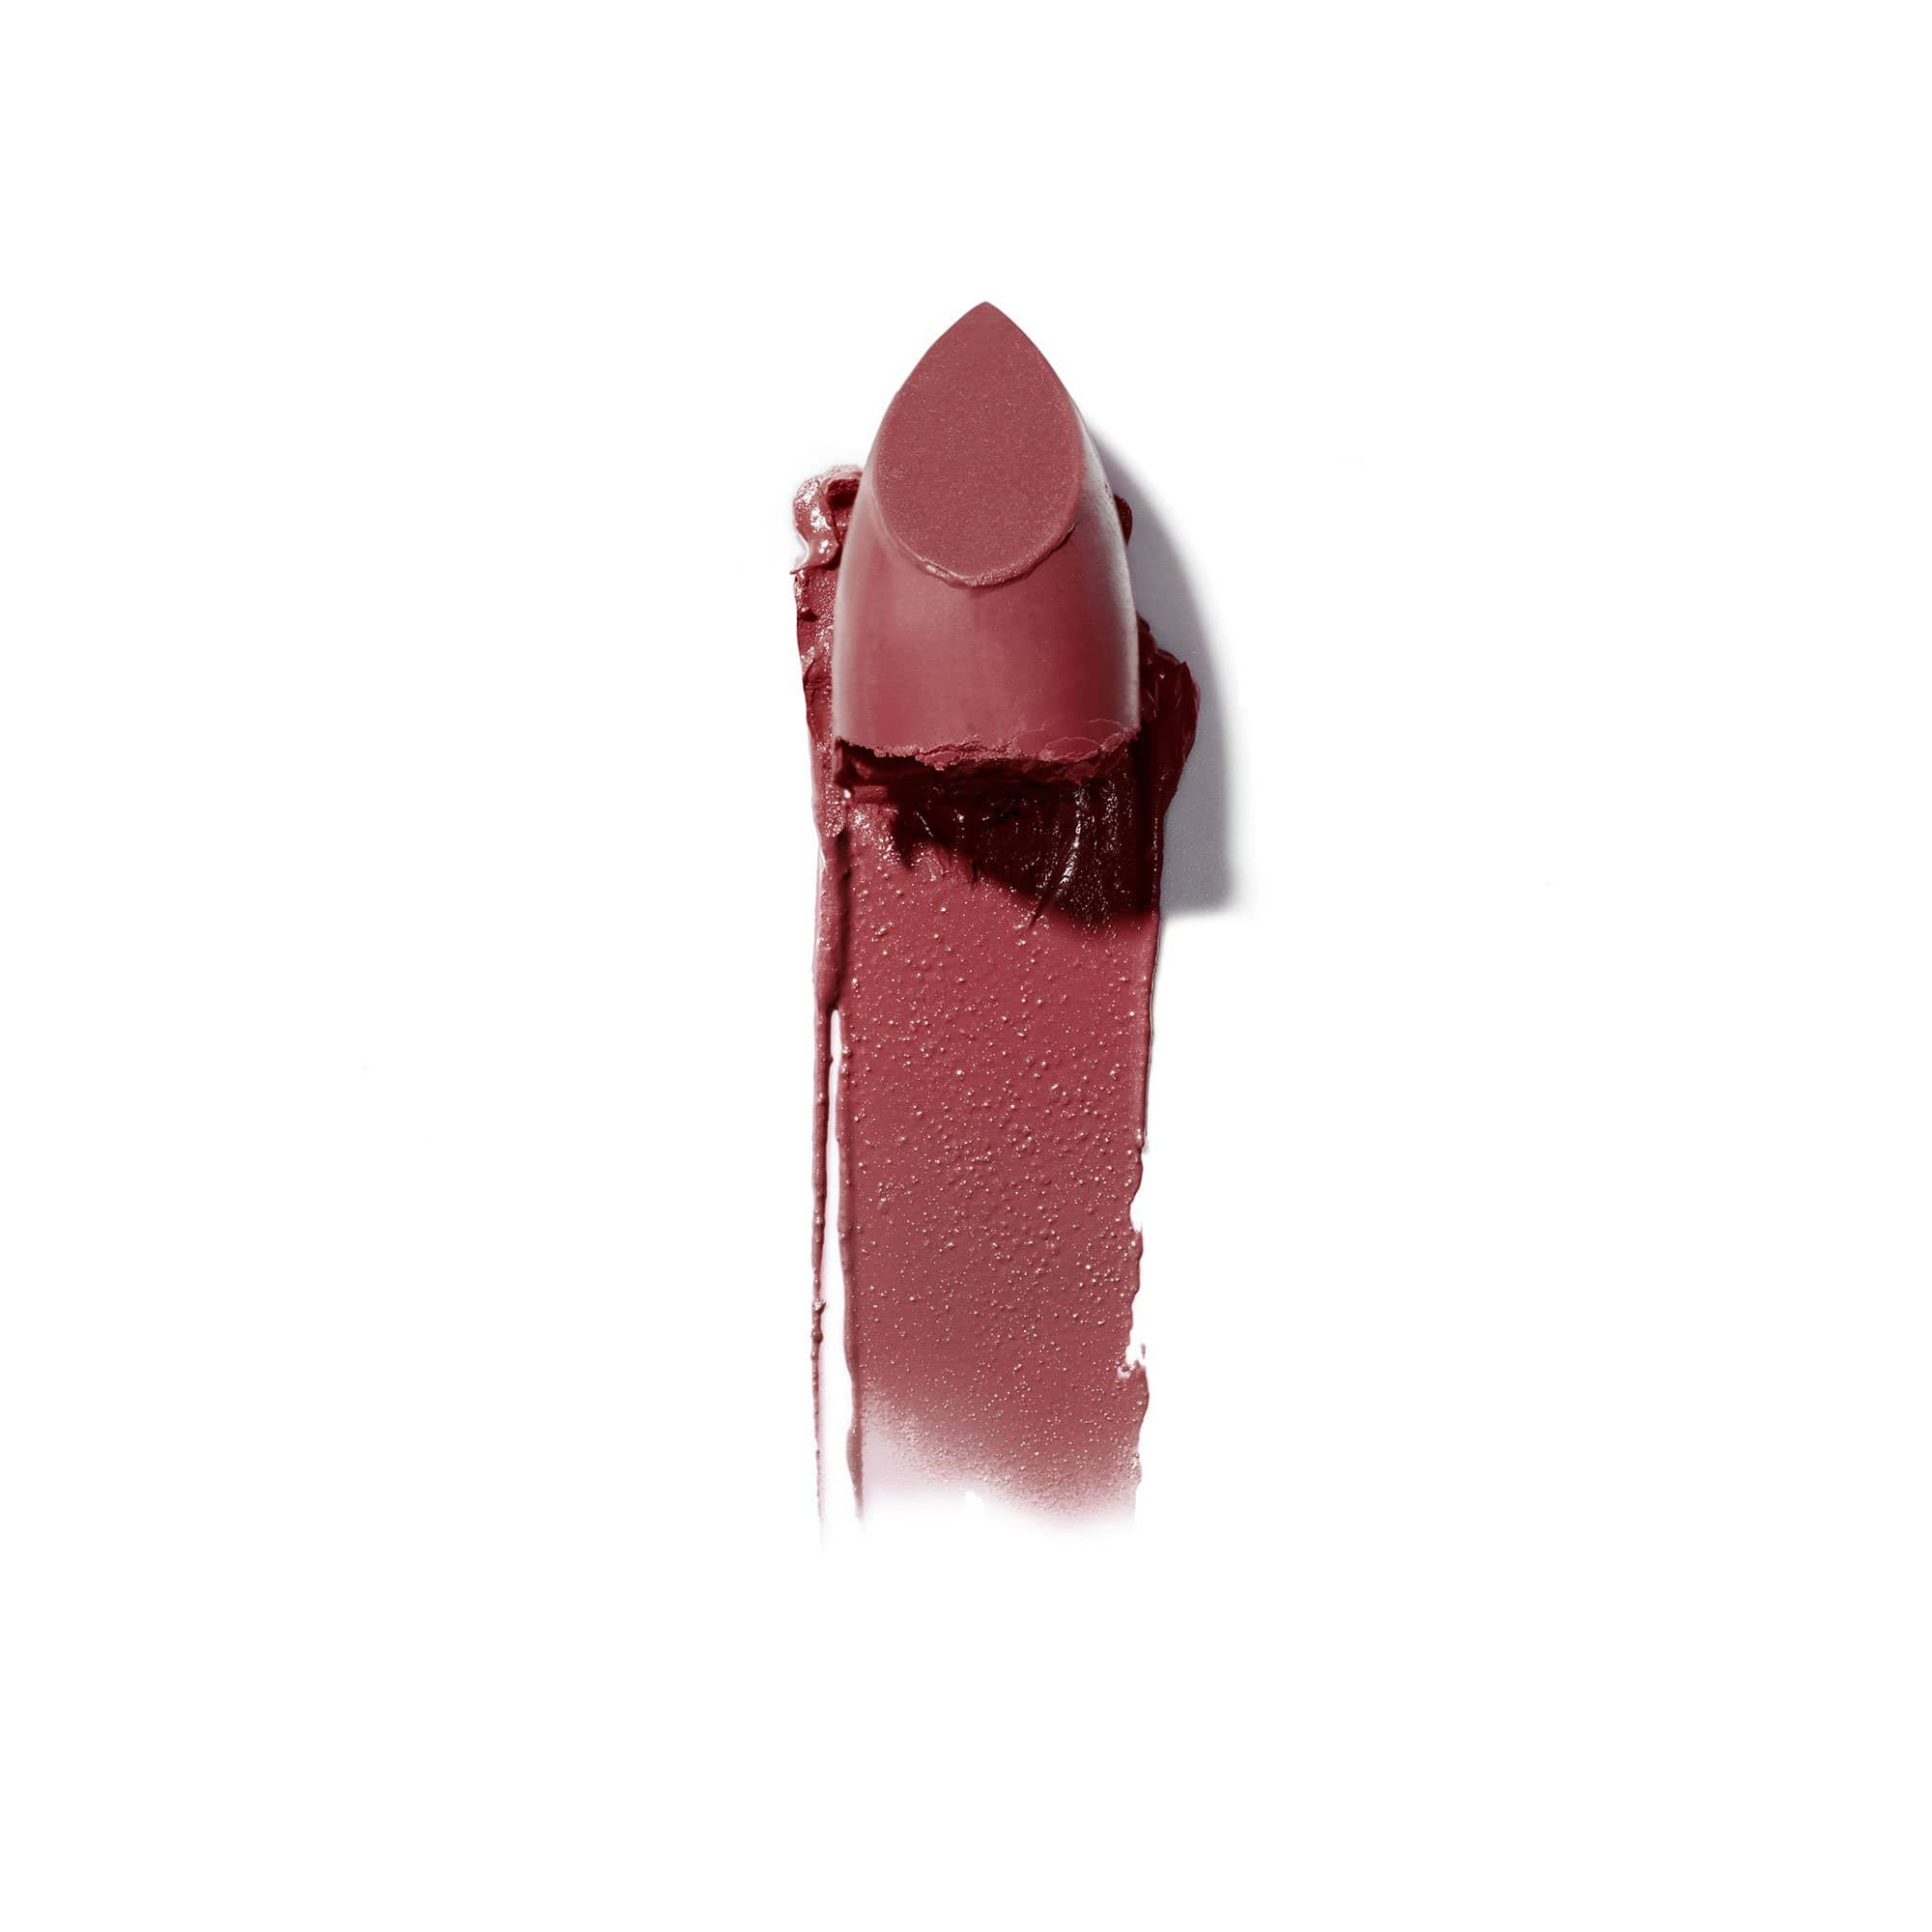 Color Block Lipstick - The Natural Beauty Club